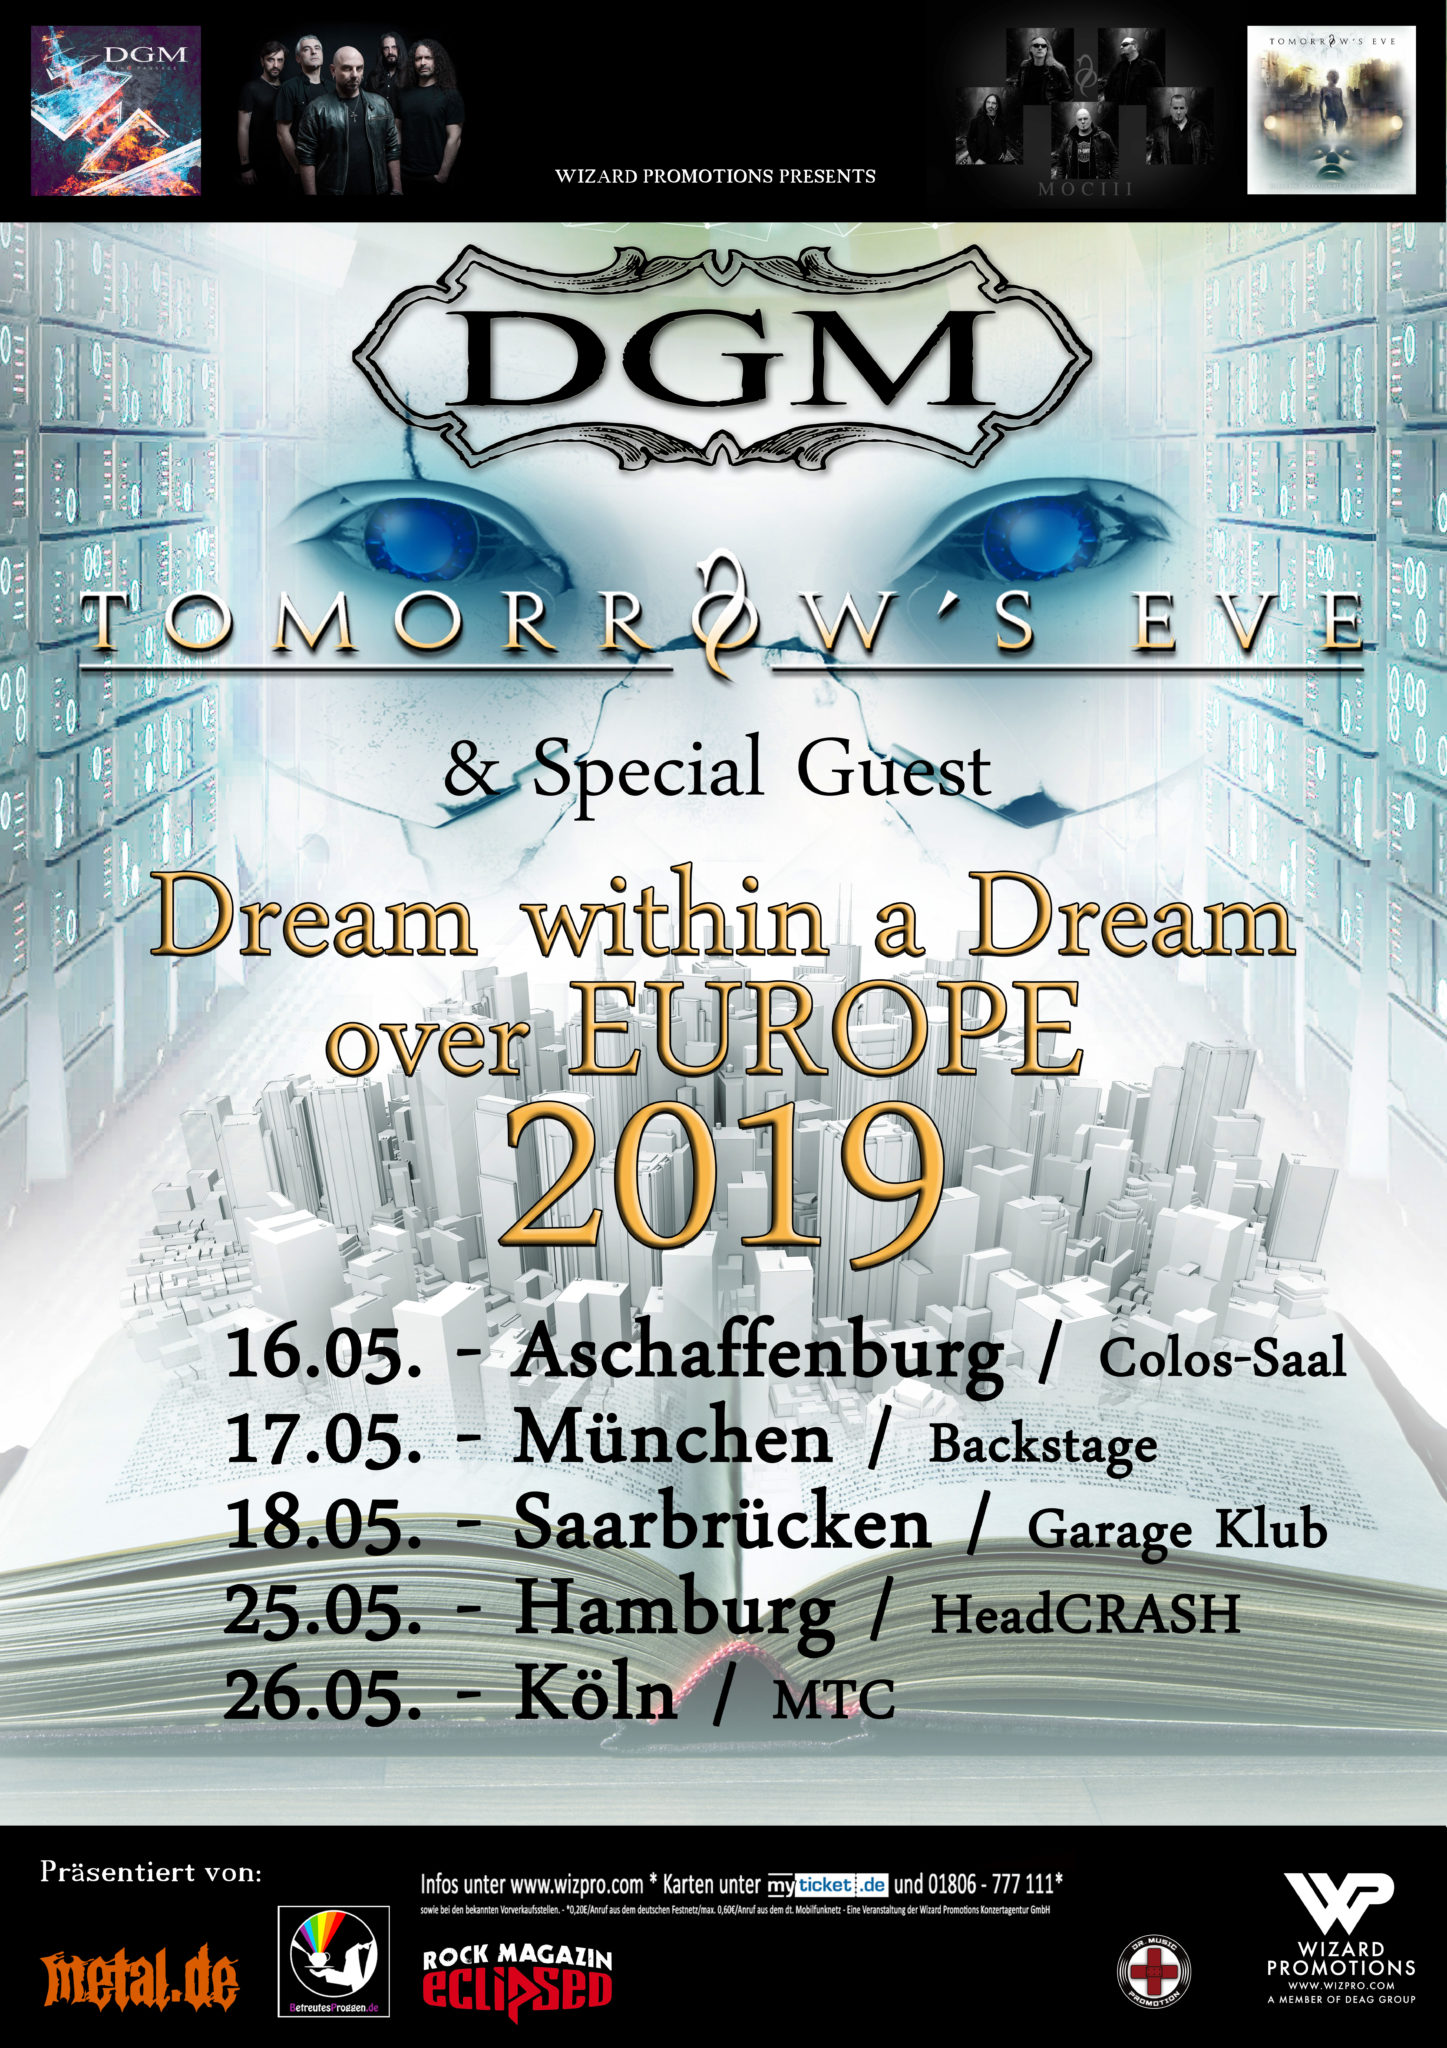 DGM & Tomorrows Eve Dream Within A Dream Tour 2019